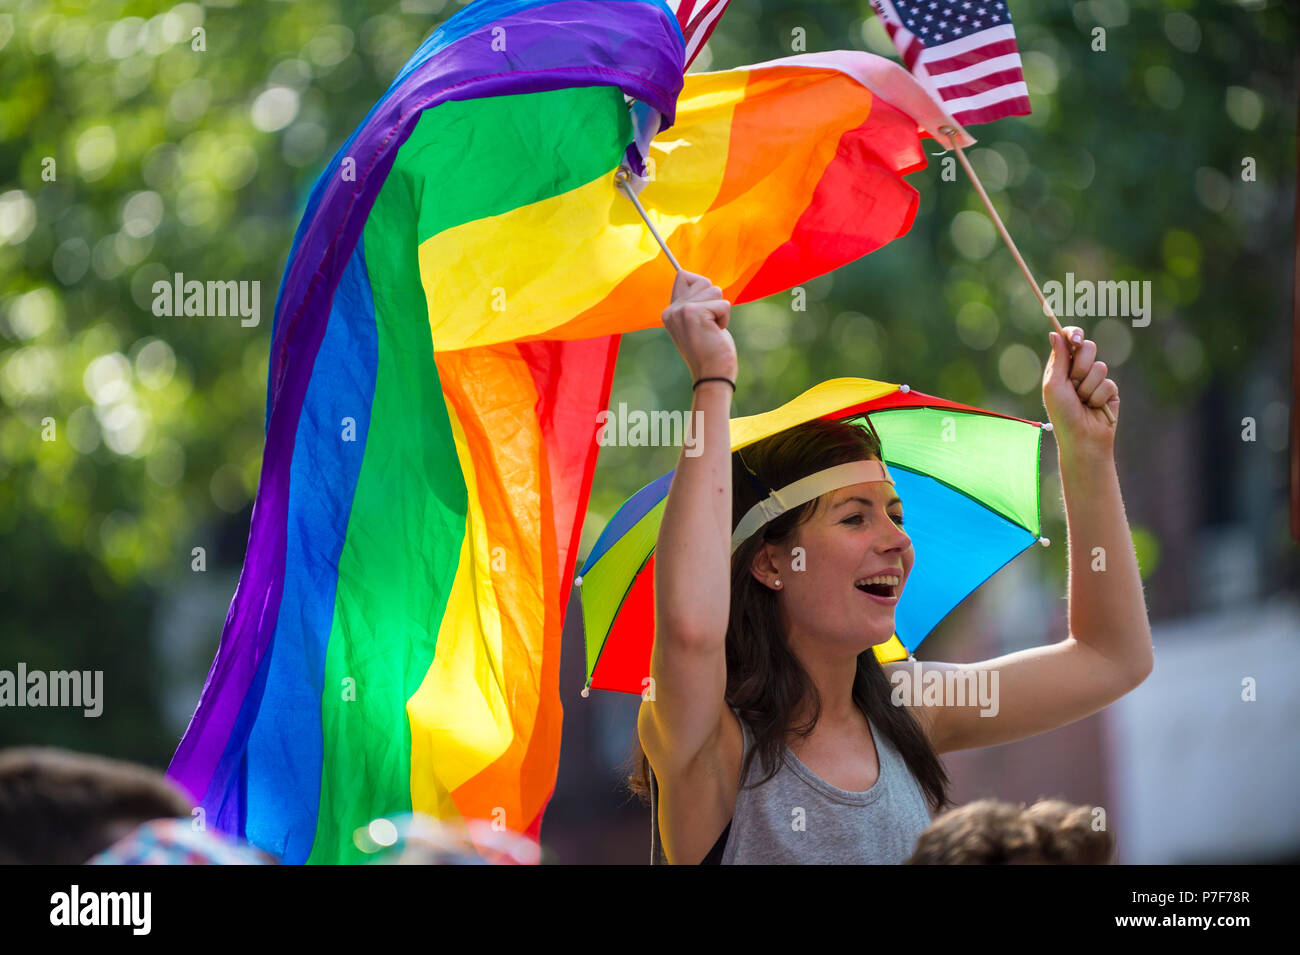 NEW YORK CITY - JUNE 25, 2017: Woman waves rainbow and US flags on the sidelines of the annual Pride Parade as it passes through Greenwich Village. - Stock Image